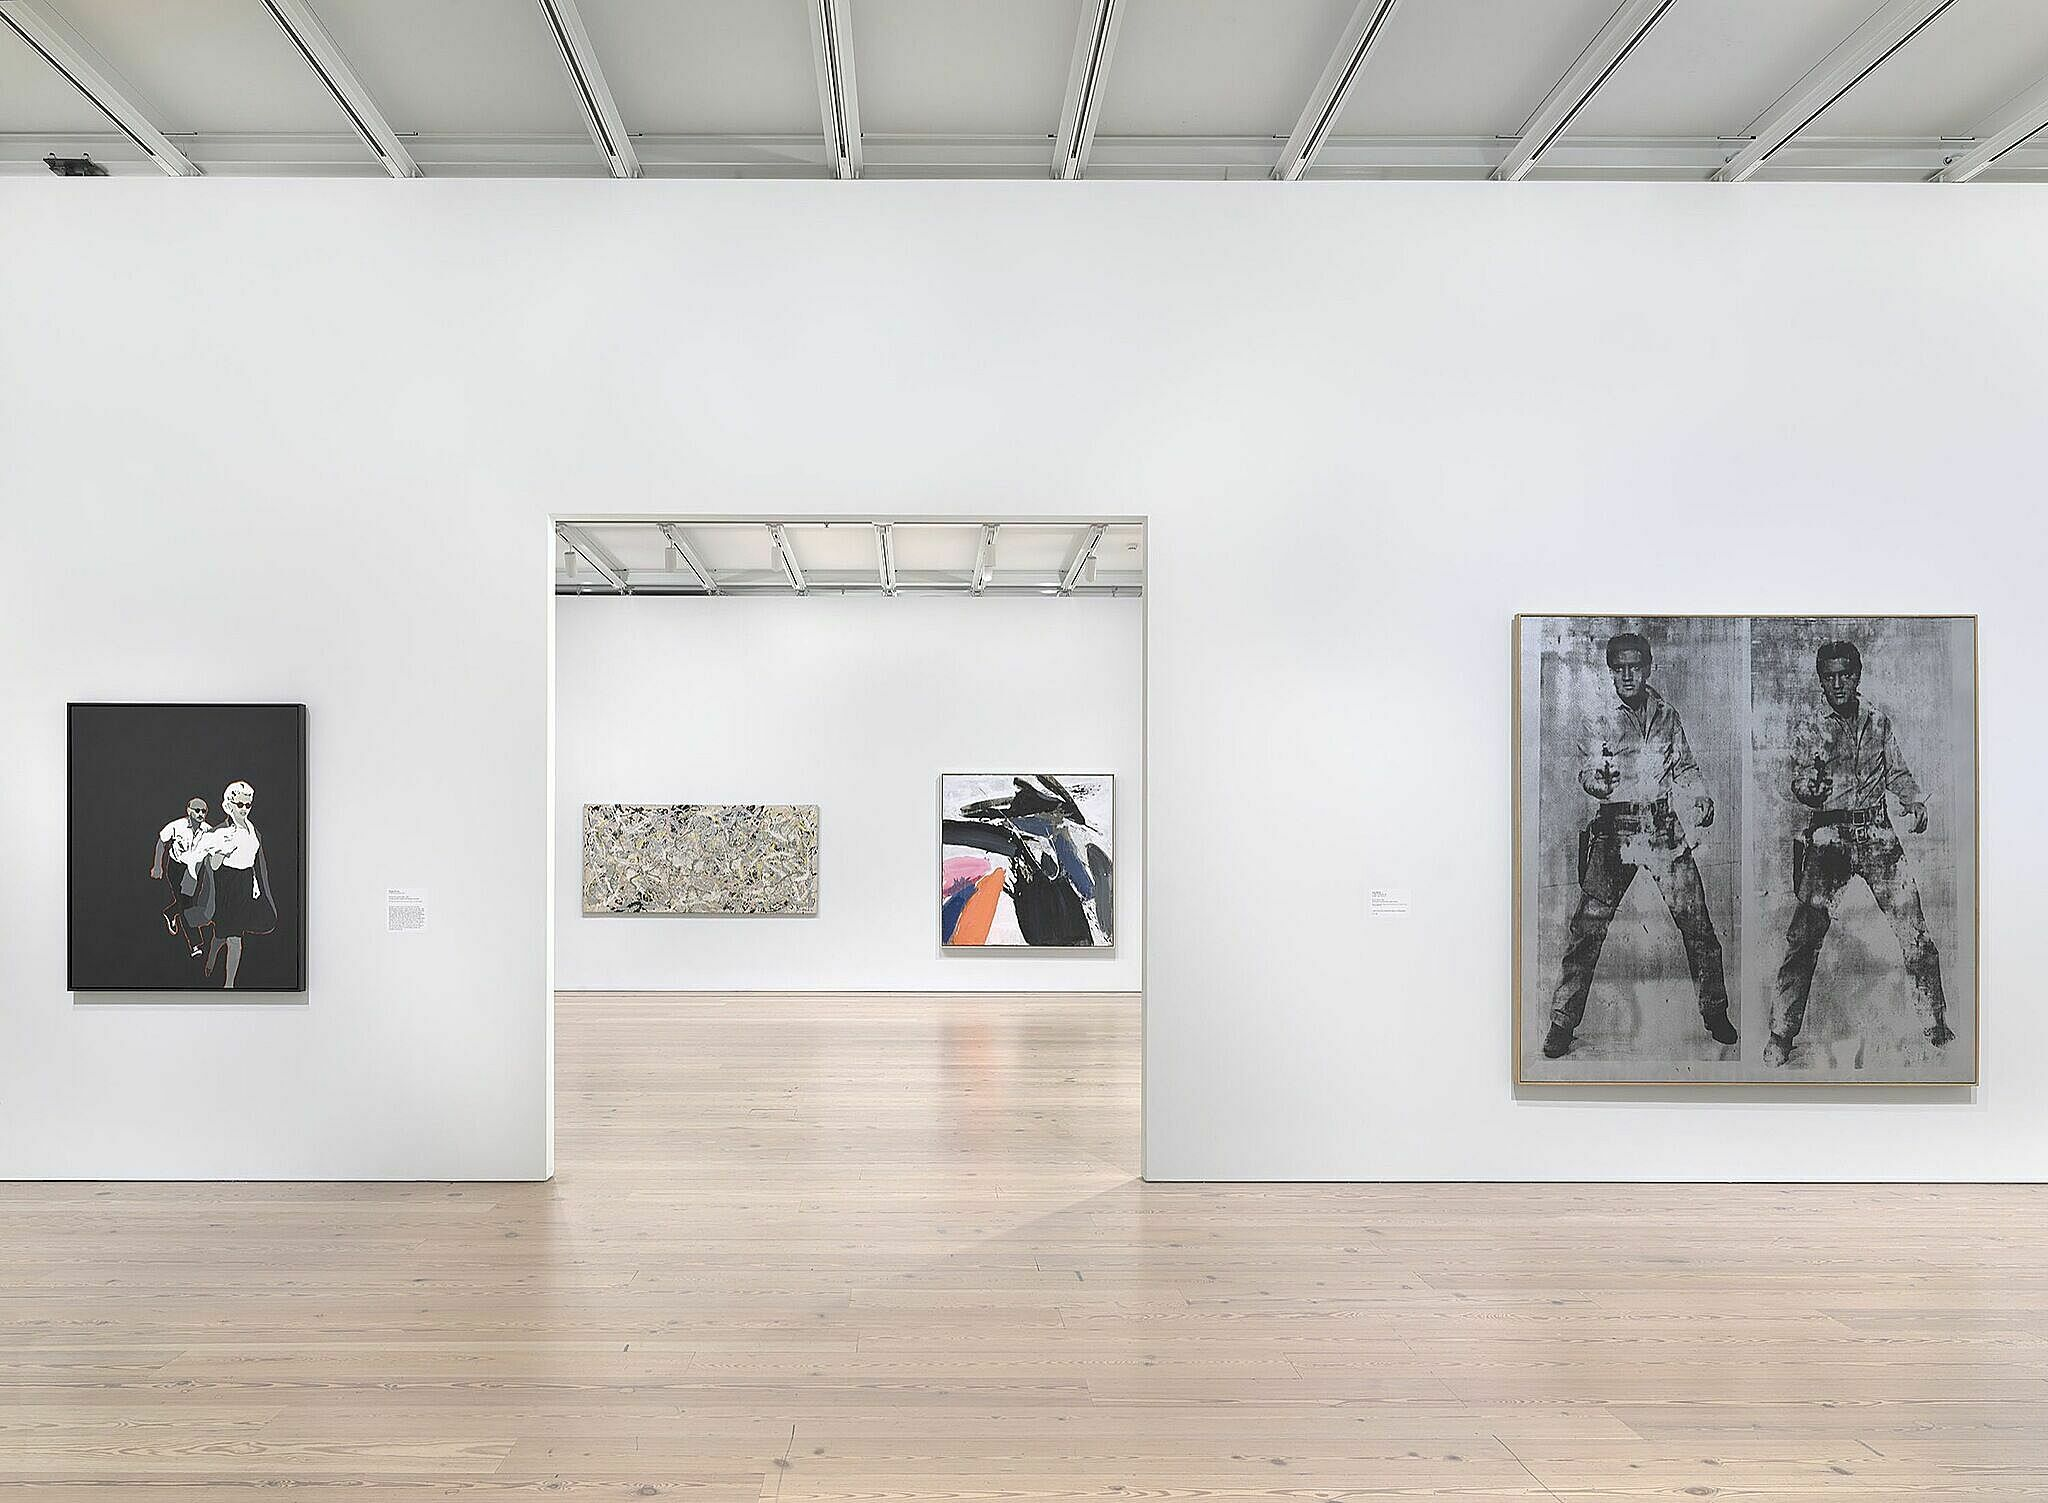 Art on the gallery walls of the Whitney Museum of American Art, including Warhol's Double Elvis, all against white walls.